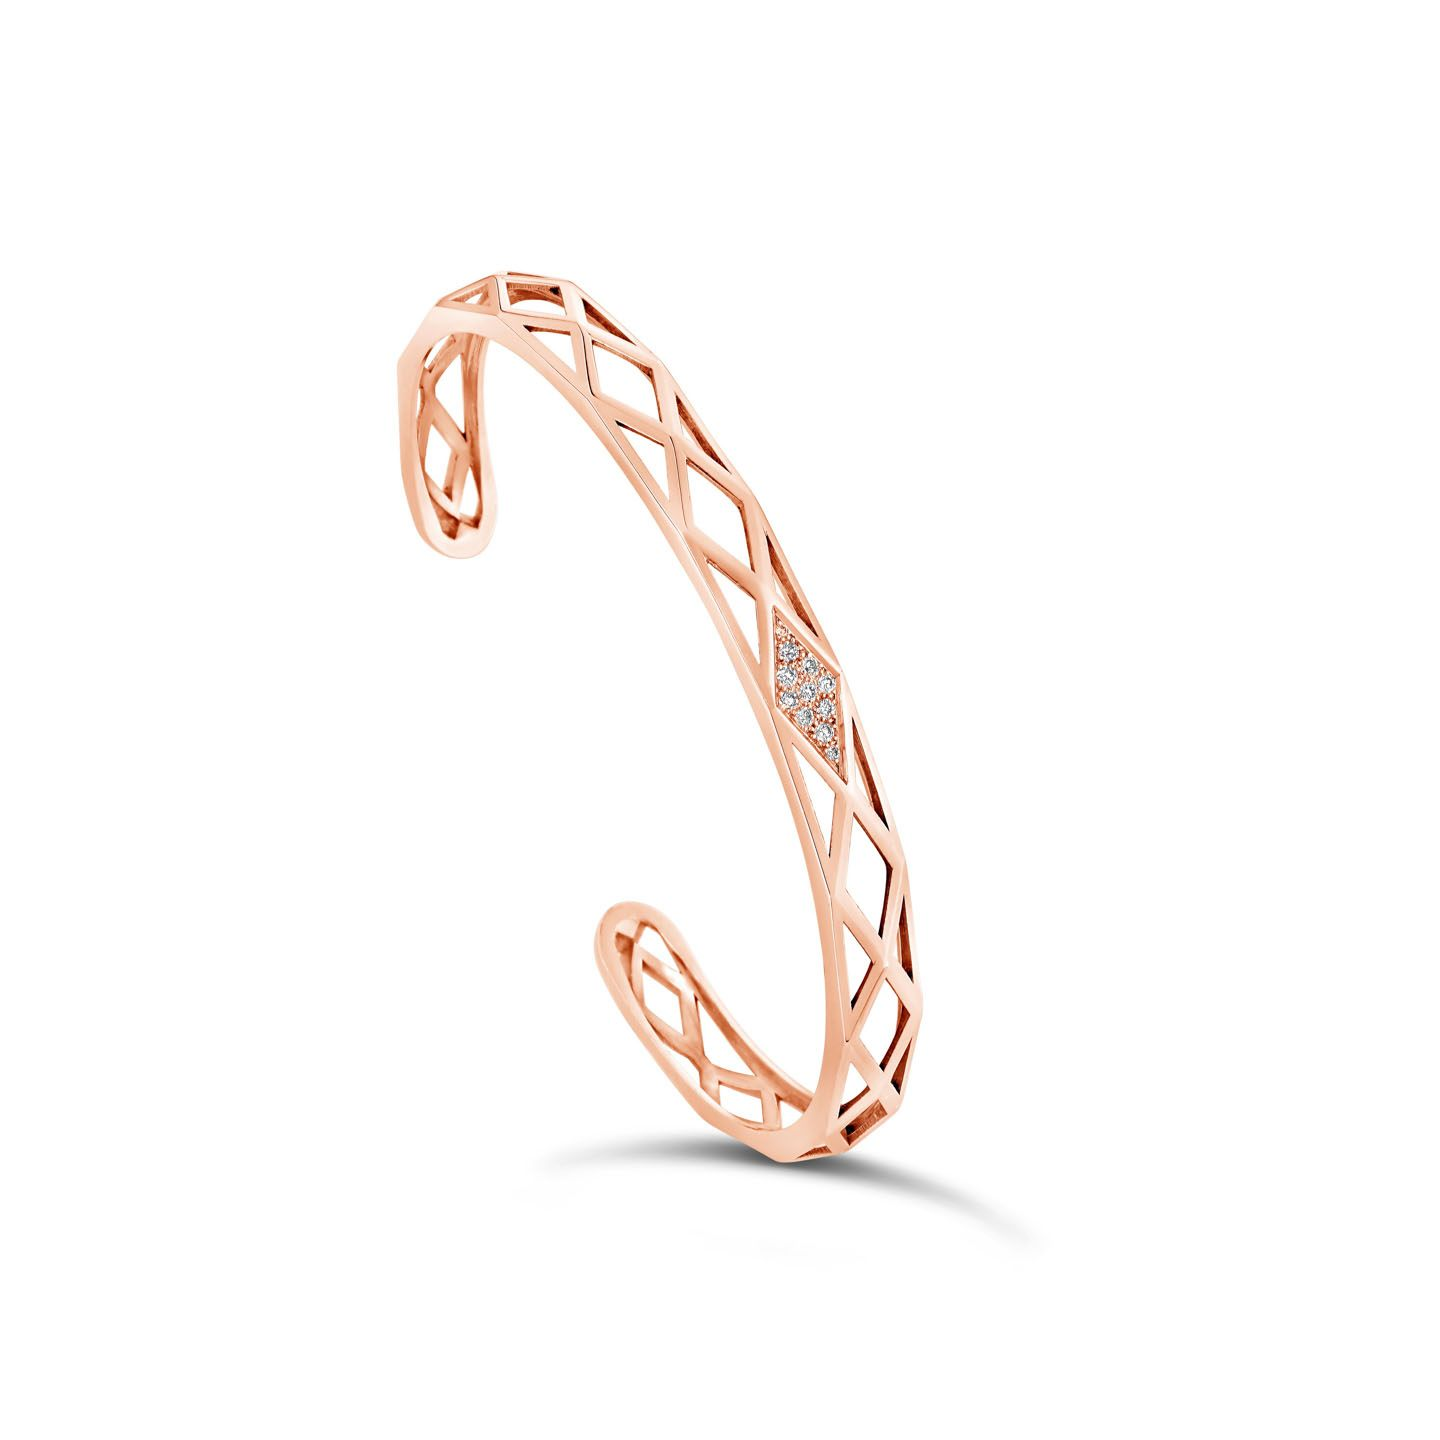 Bracelet facette or rose